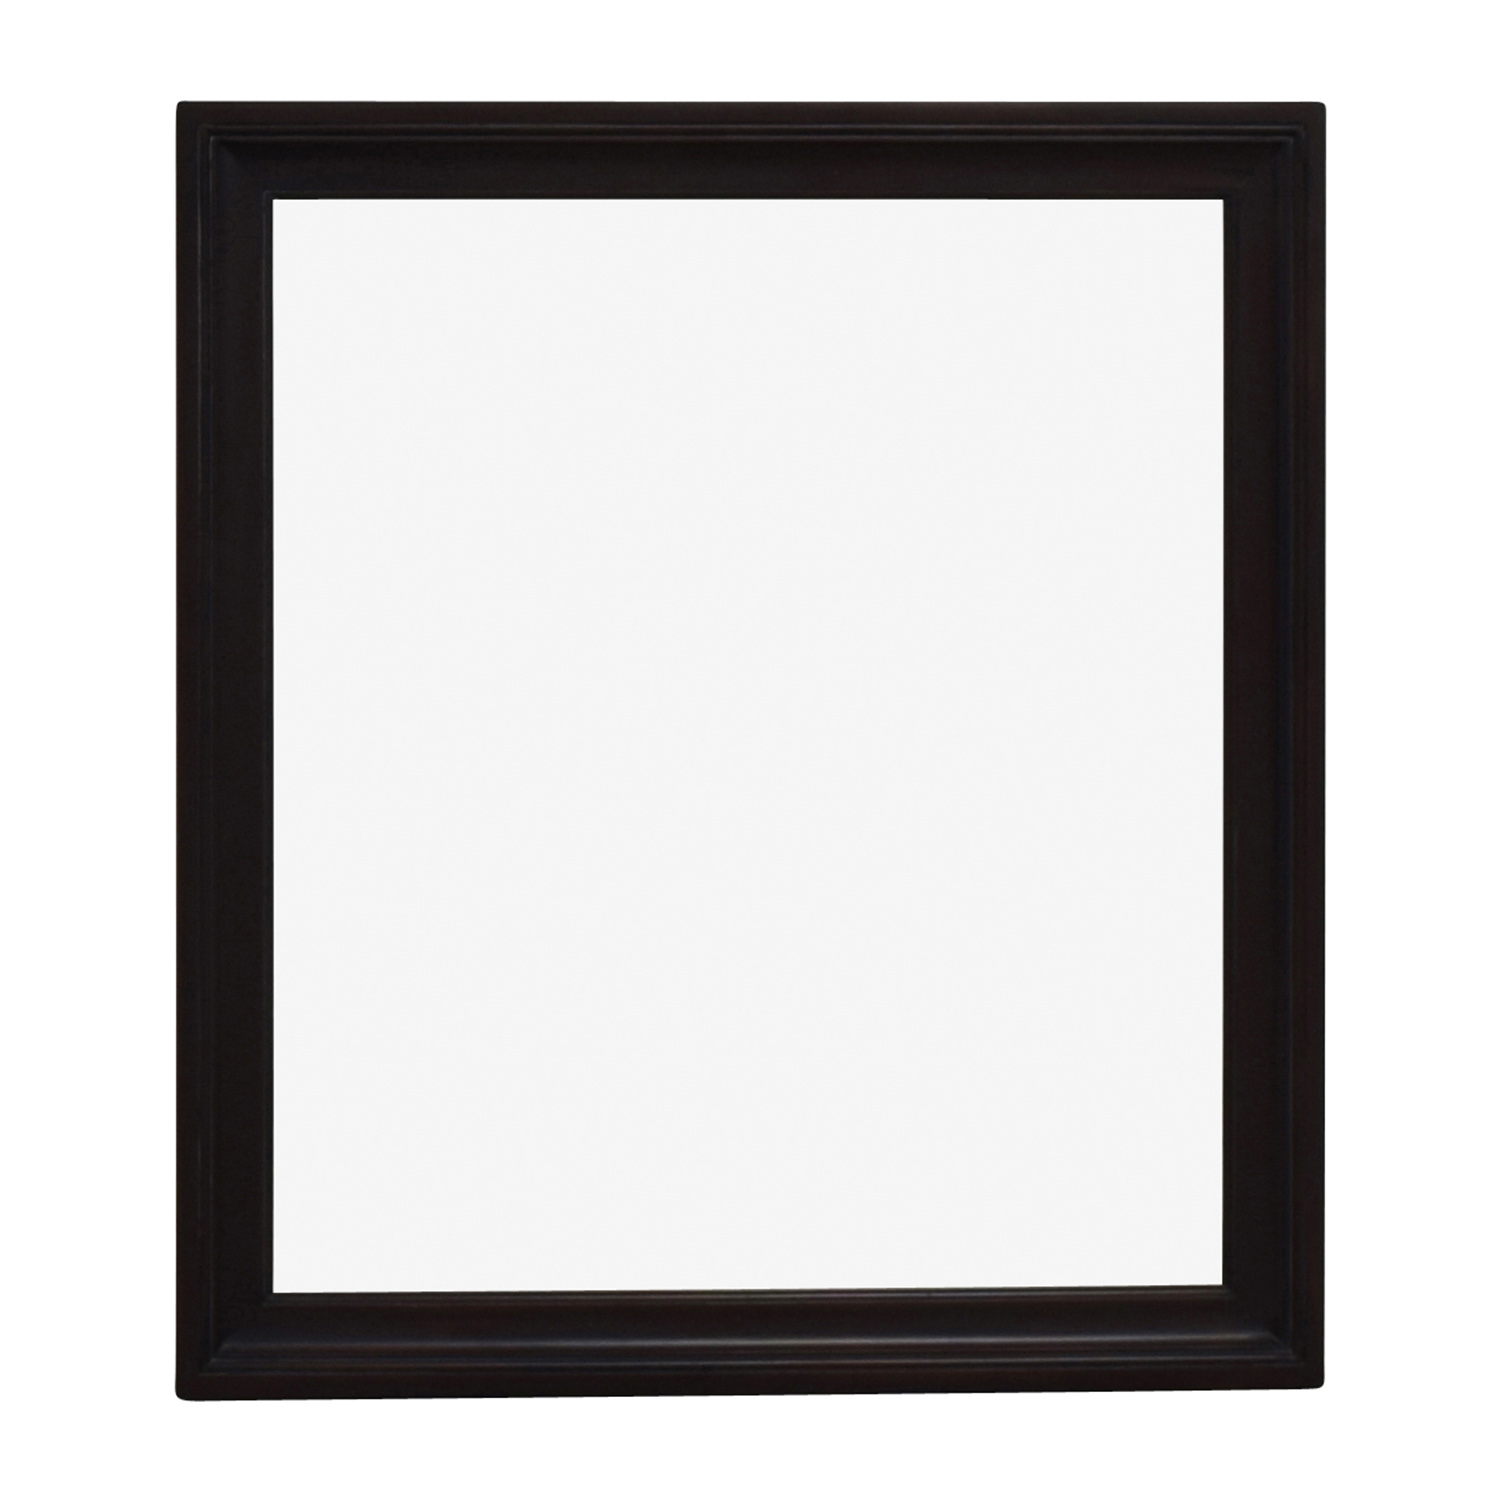 Pulaski Furniture Pulaski Brown Solid Wood Mirror Decor